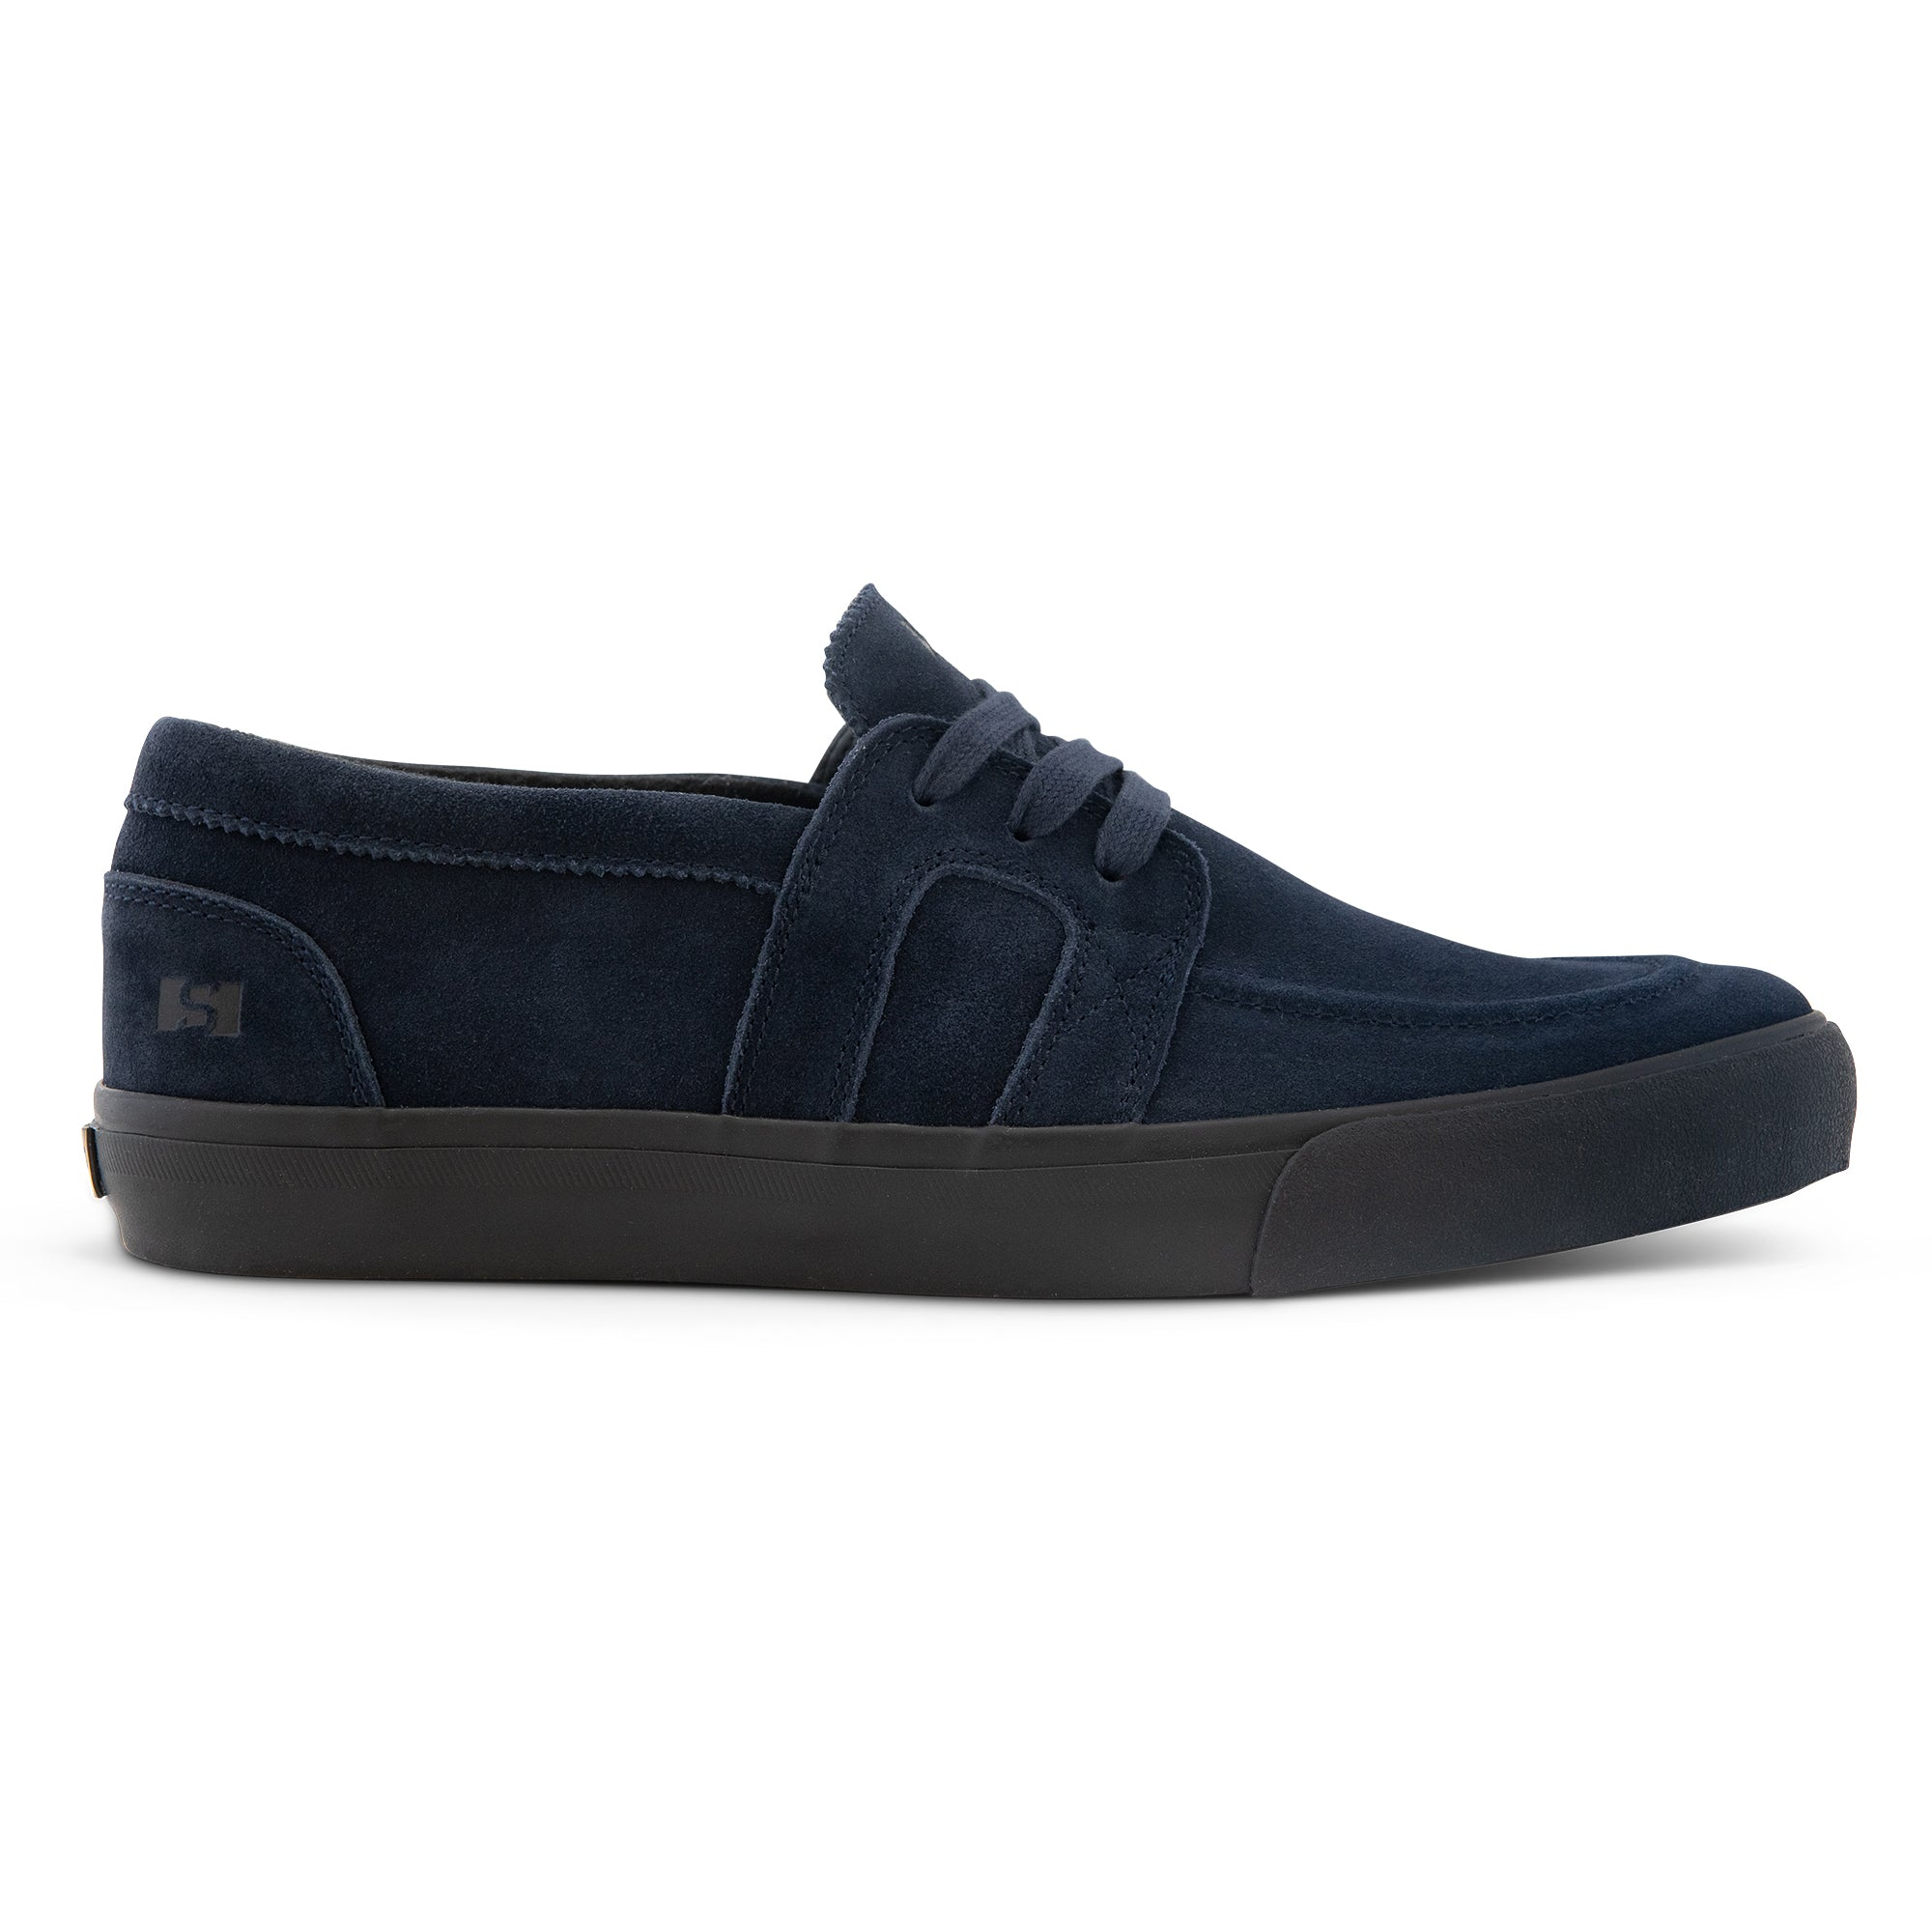 Christian Maalouf X Vista Navy/Black